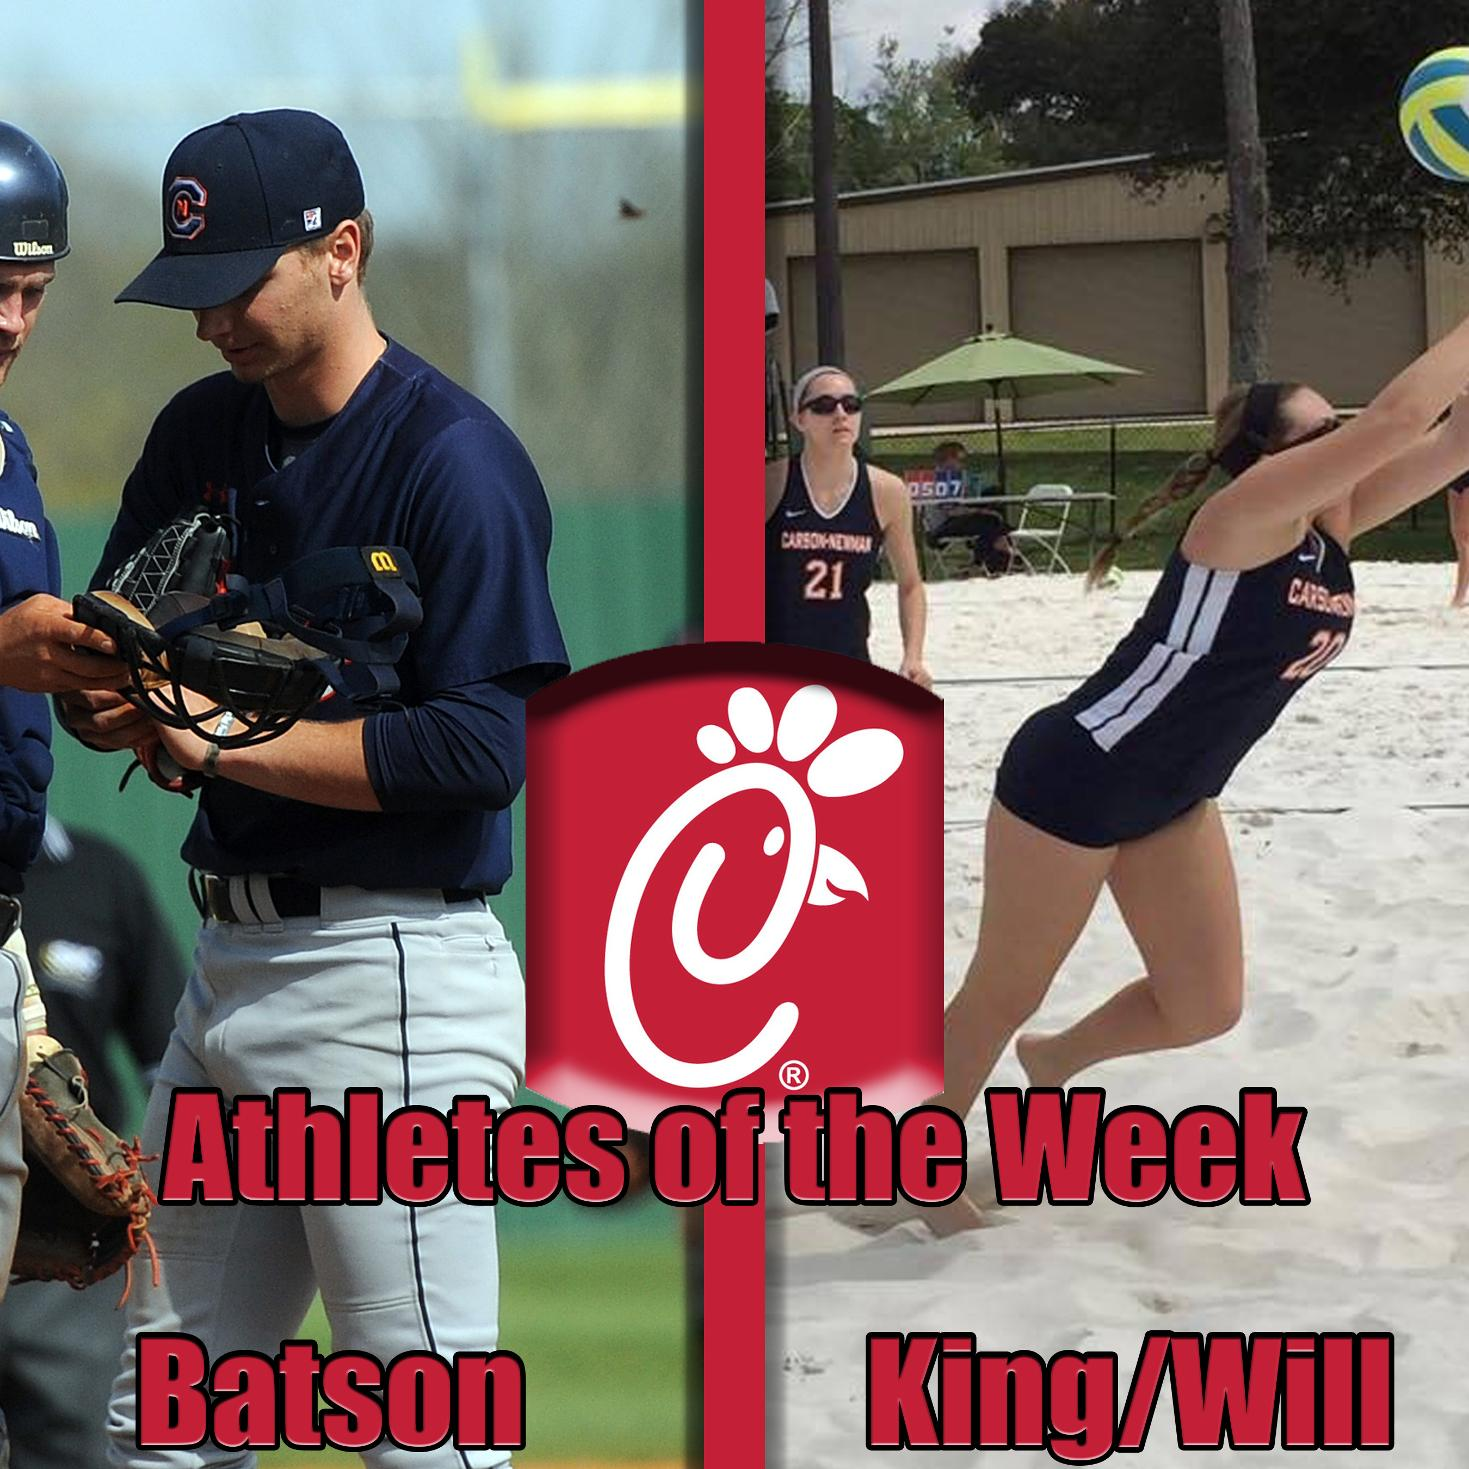 Batson, Beach Volleyball duo bring in Chick-Fil-A Athlete of the Week honors